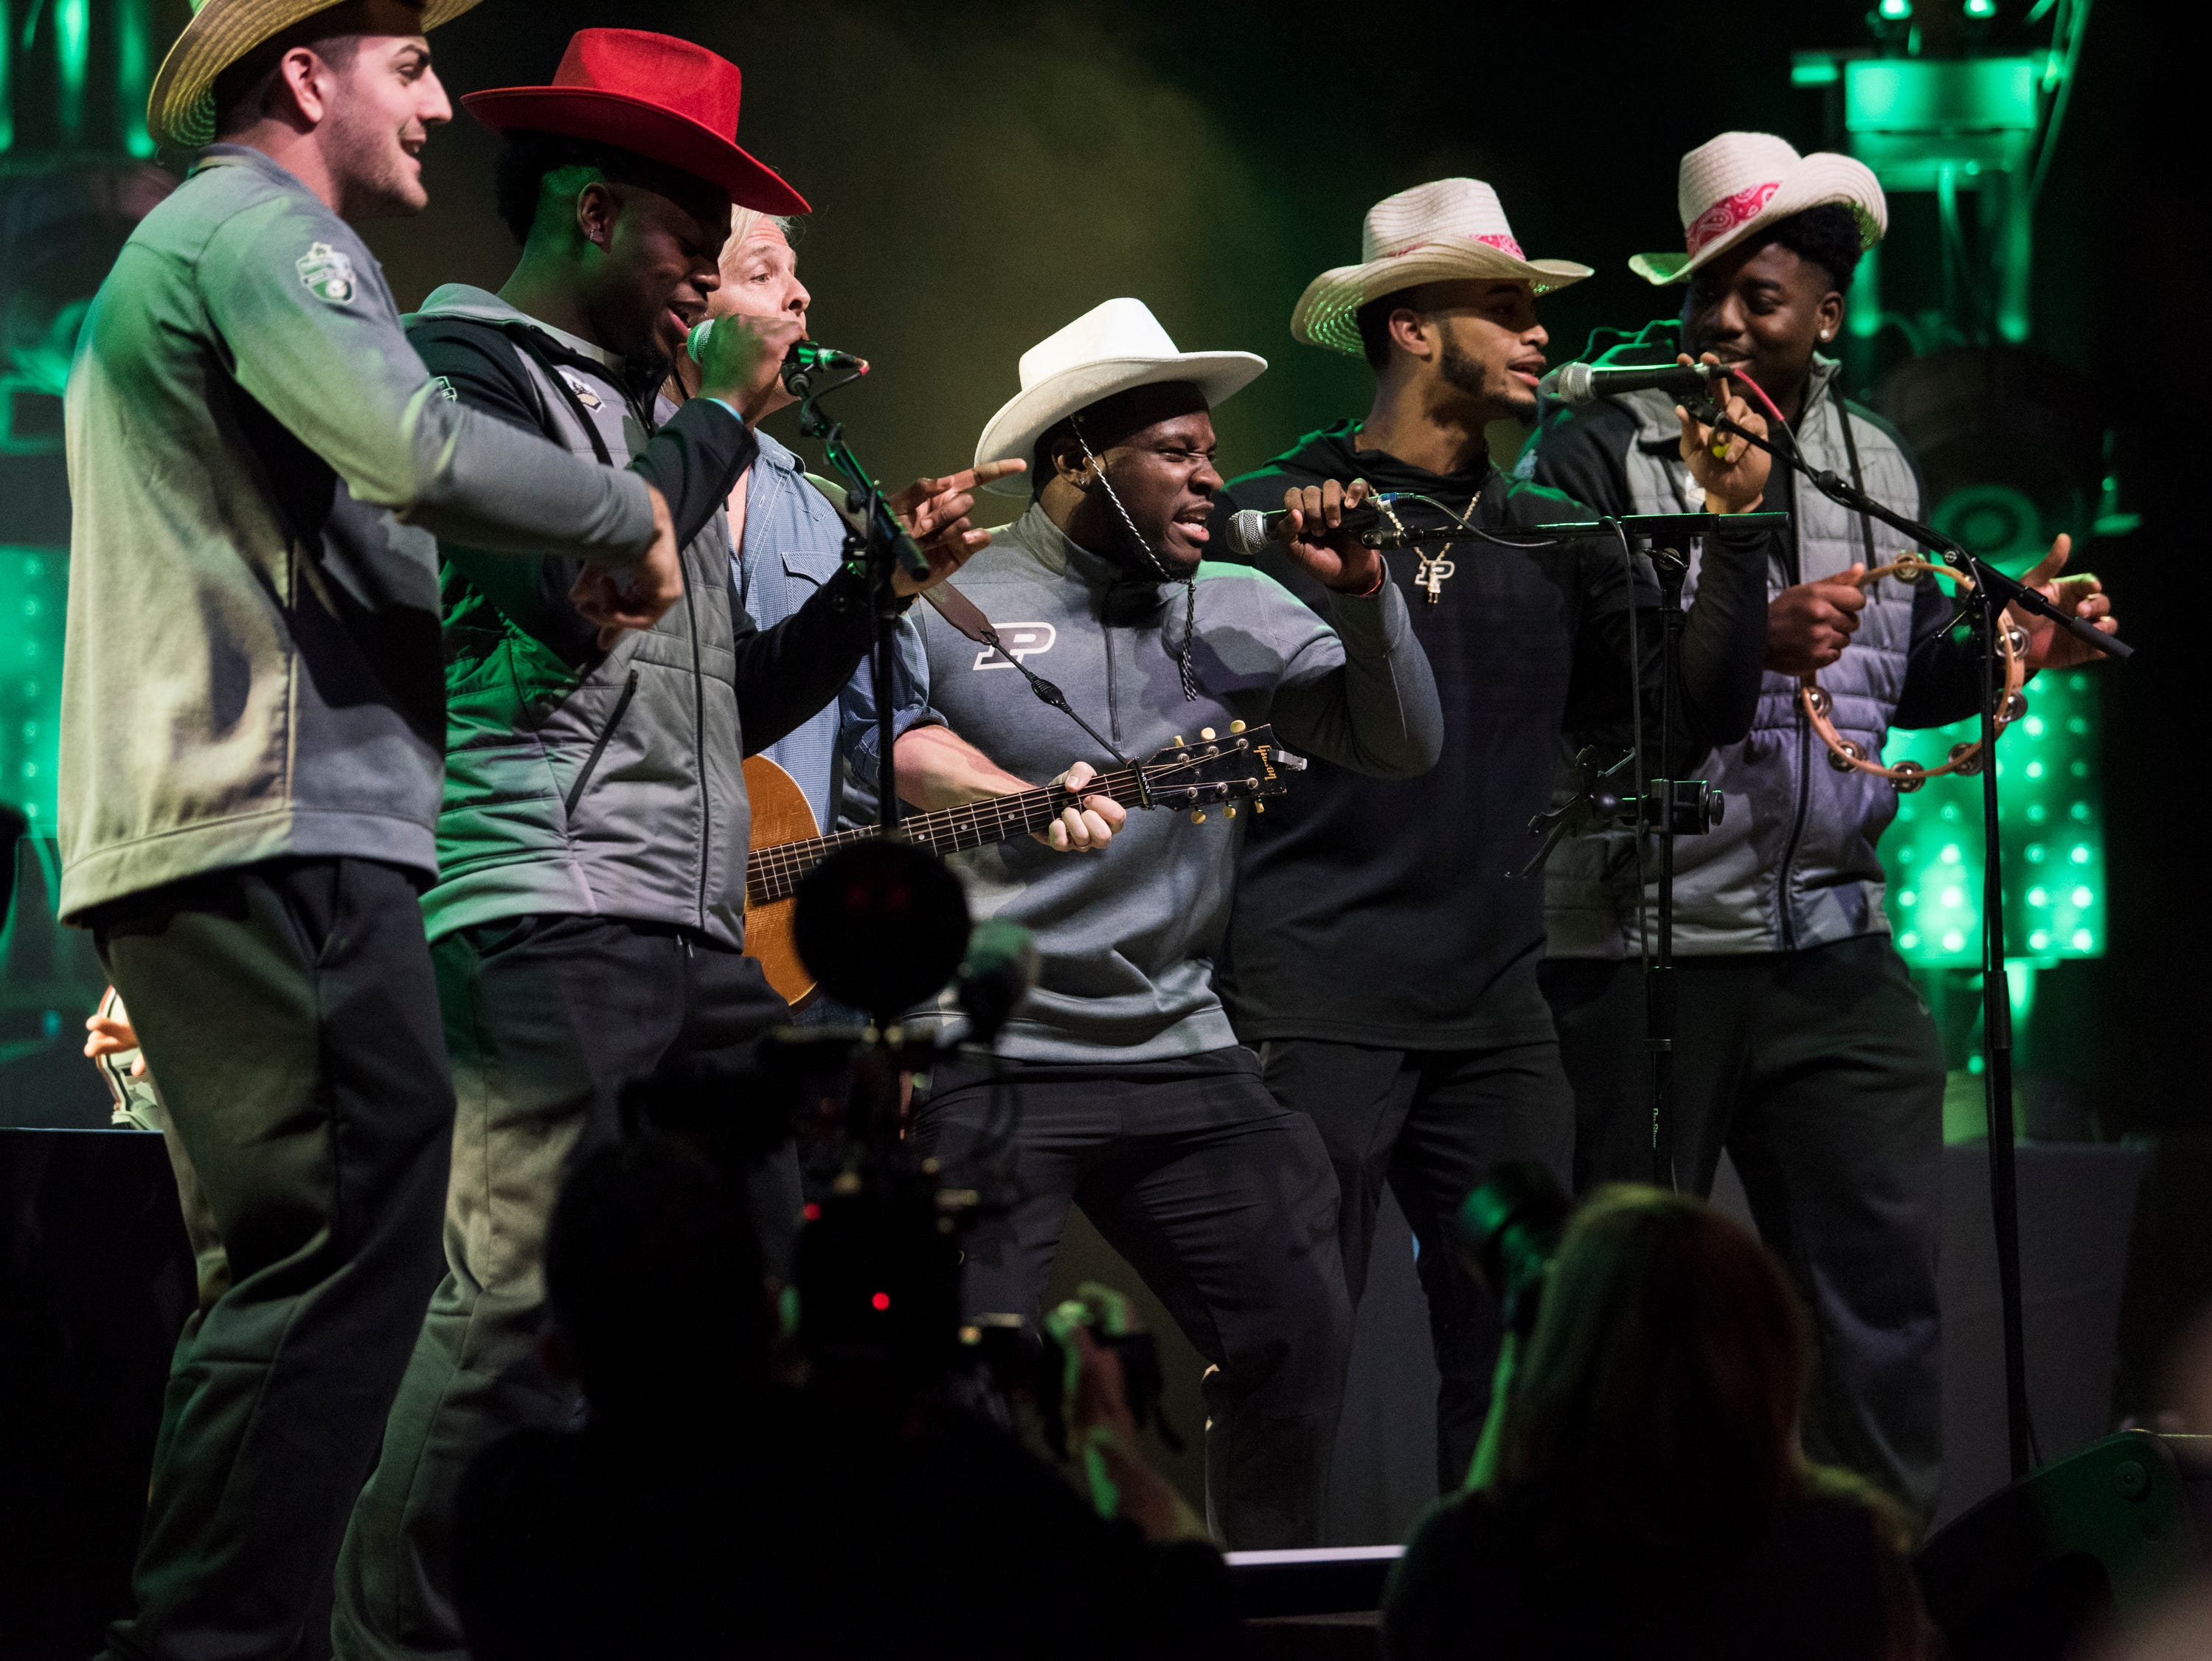 Purdue players compete in a song writing competition at Wild Horse Saloon in Nashville, Ten., on Wednesday, Dec. 26, 2018. Auburn takes on Purdue in the Music City Bowl Friday.